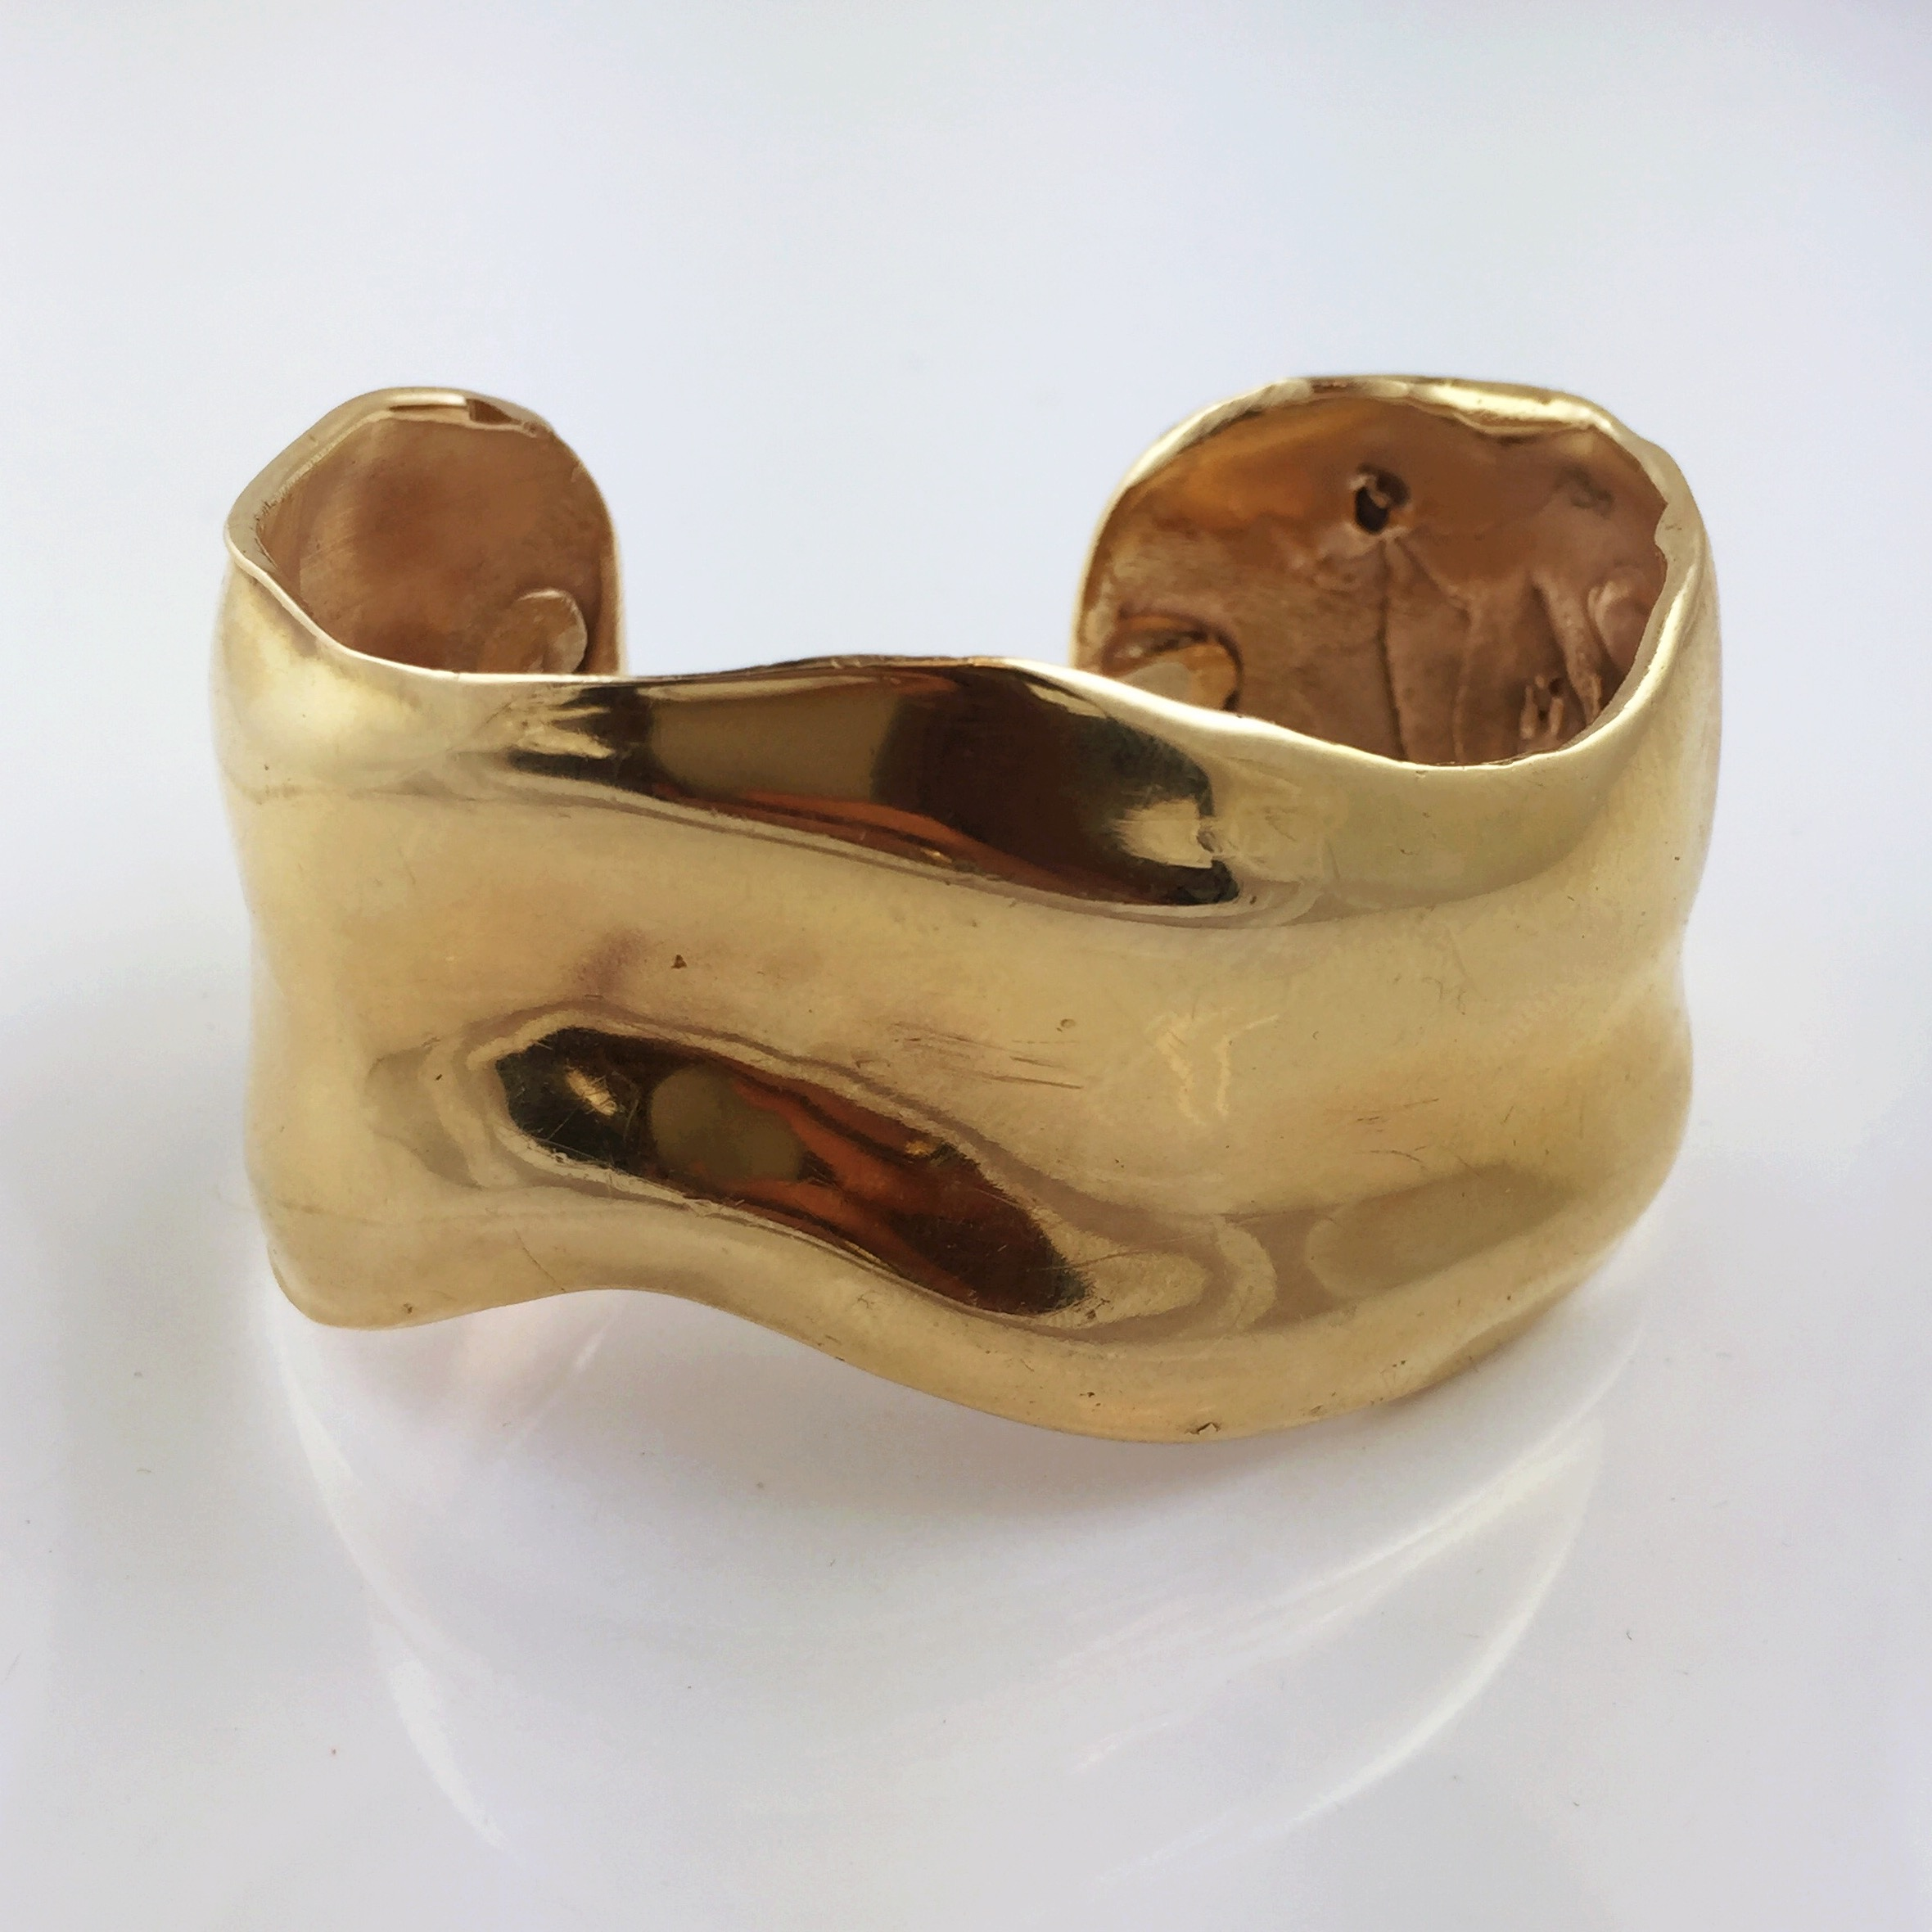 The gold cuff bracelet he made for his mother, and then gifted to his daughter on her 25th birthday.